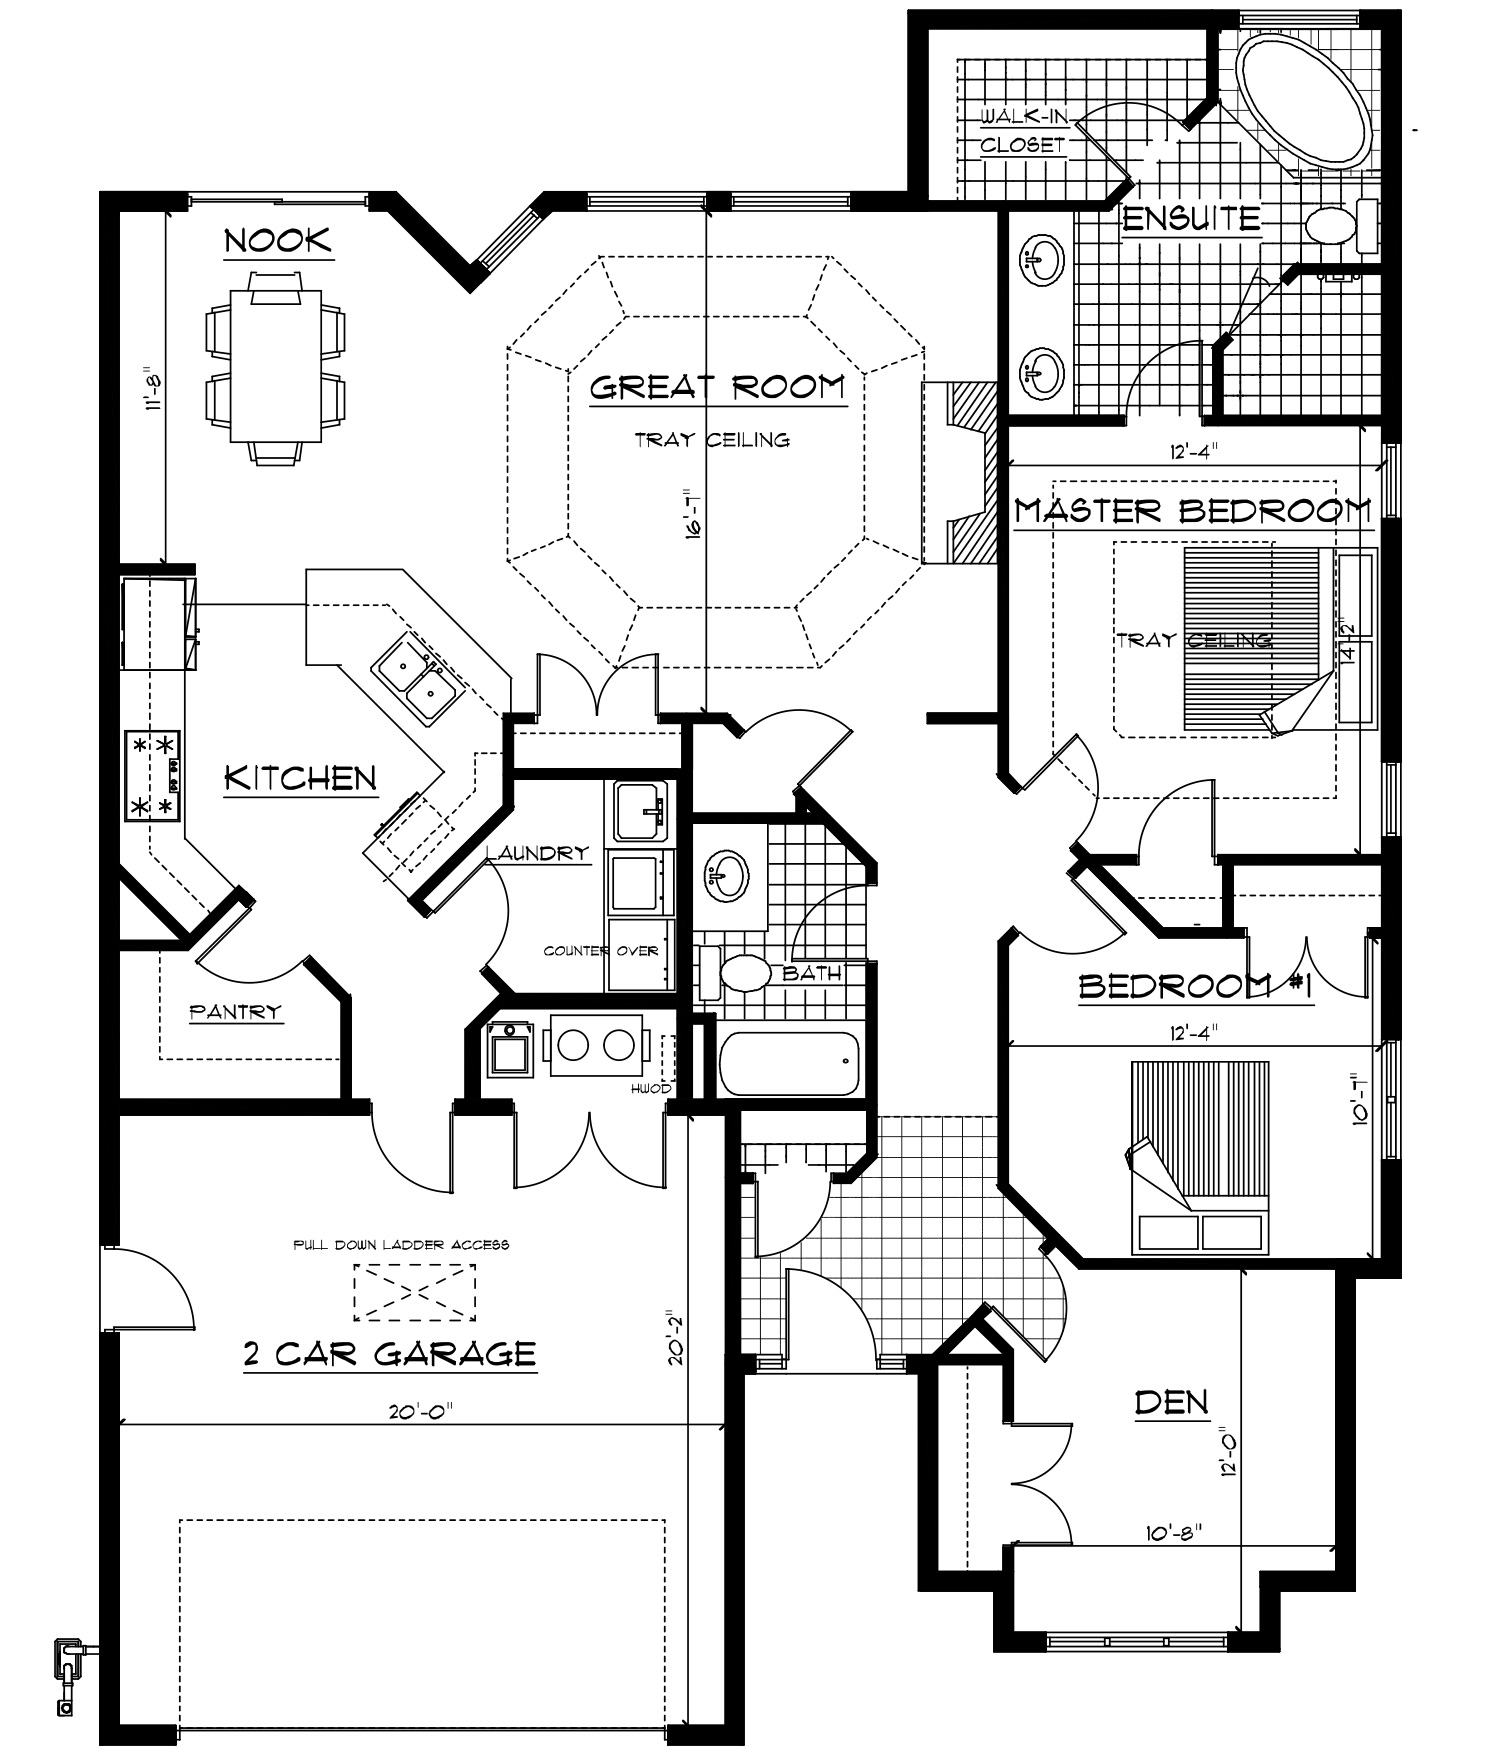 633Alpine_FloorPlan.jpg